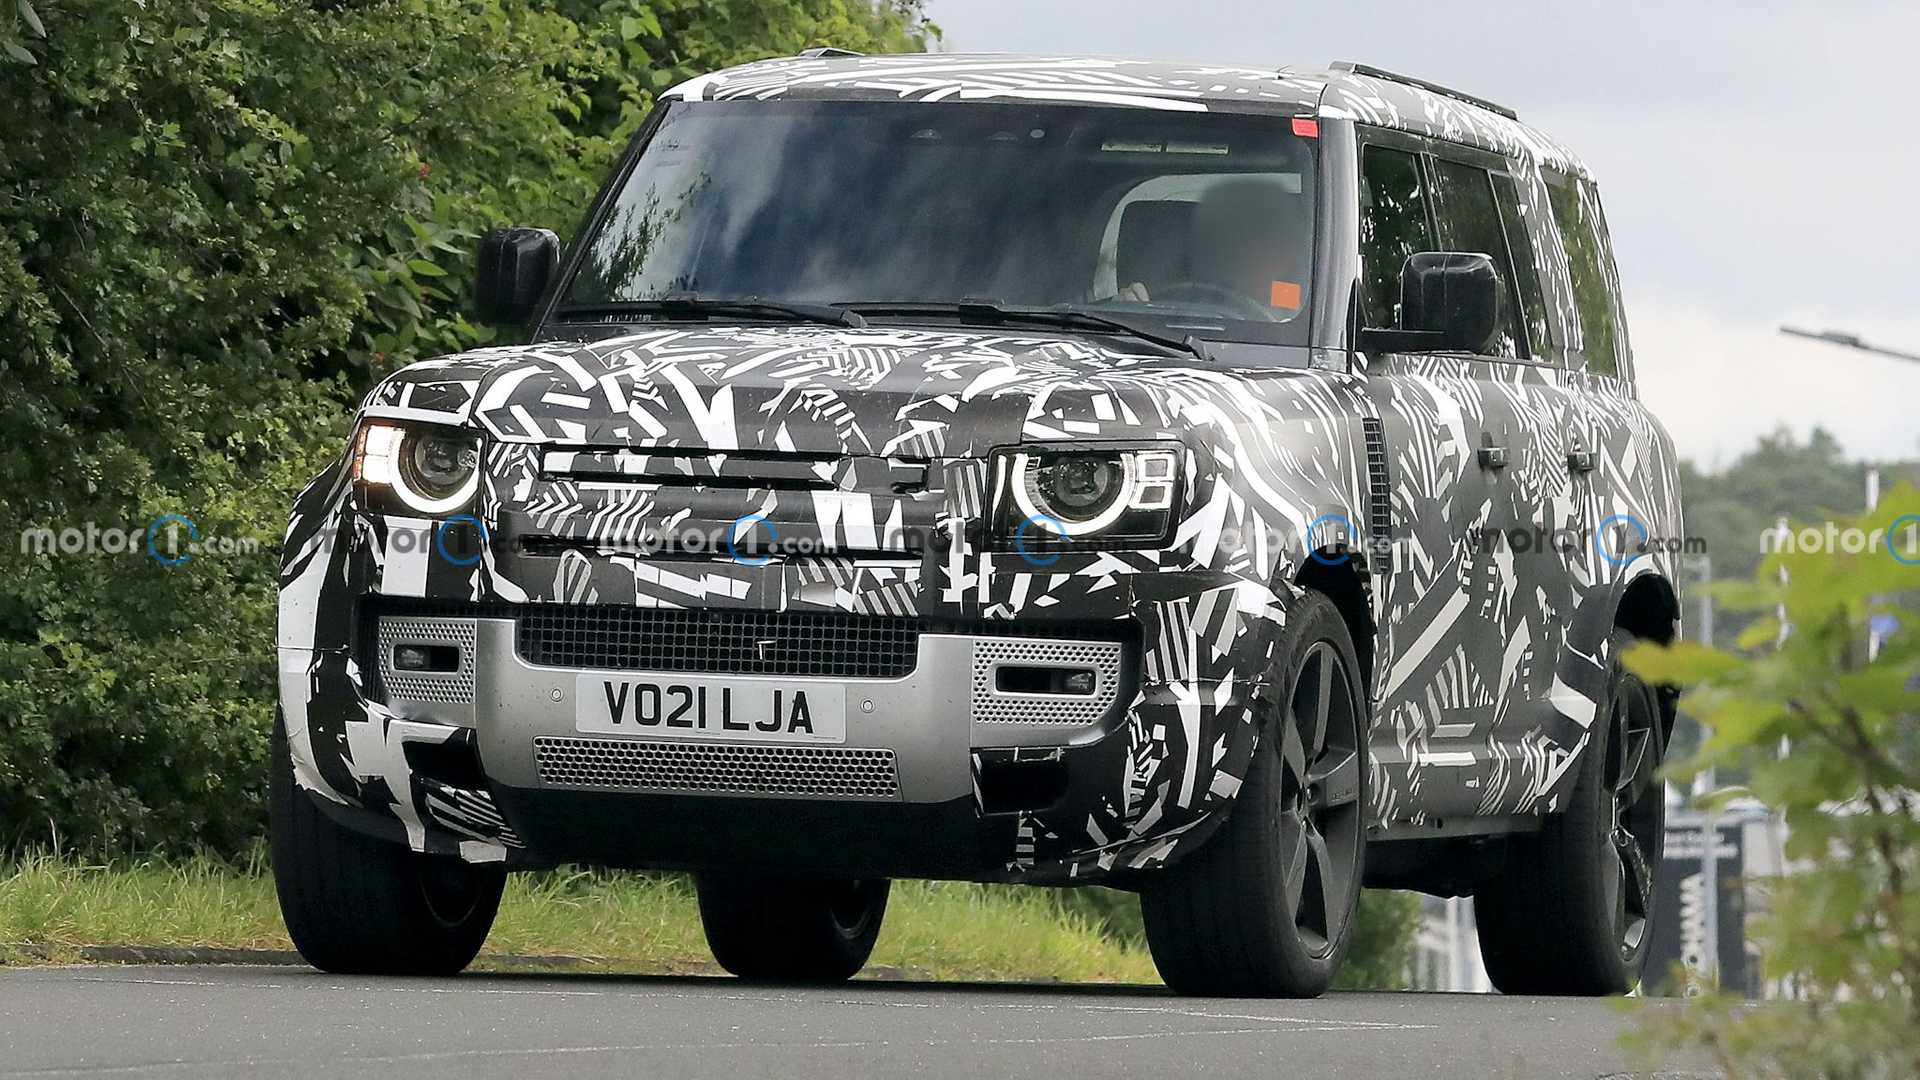 Luxury Is A Good Defense: If The New land Rover Defender Isn't Nice Enough For You, There's Another One Coming